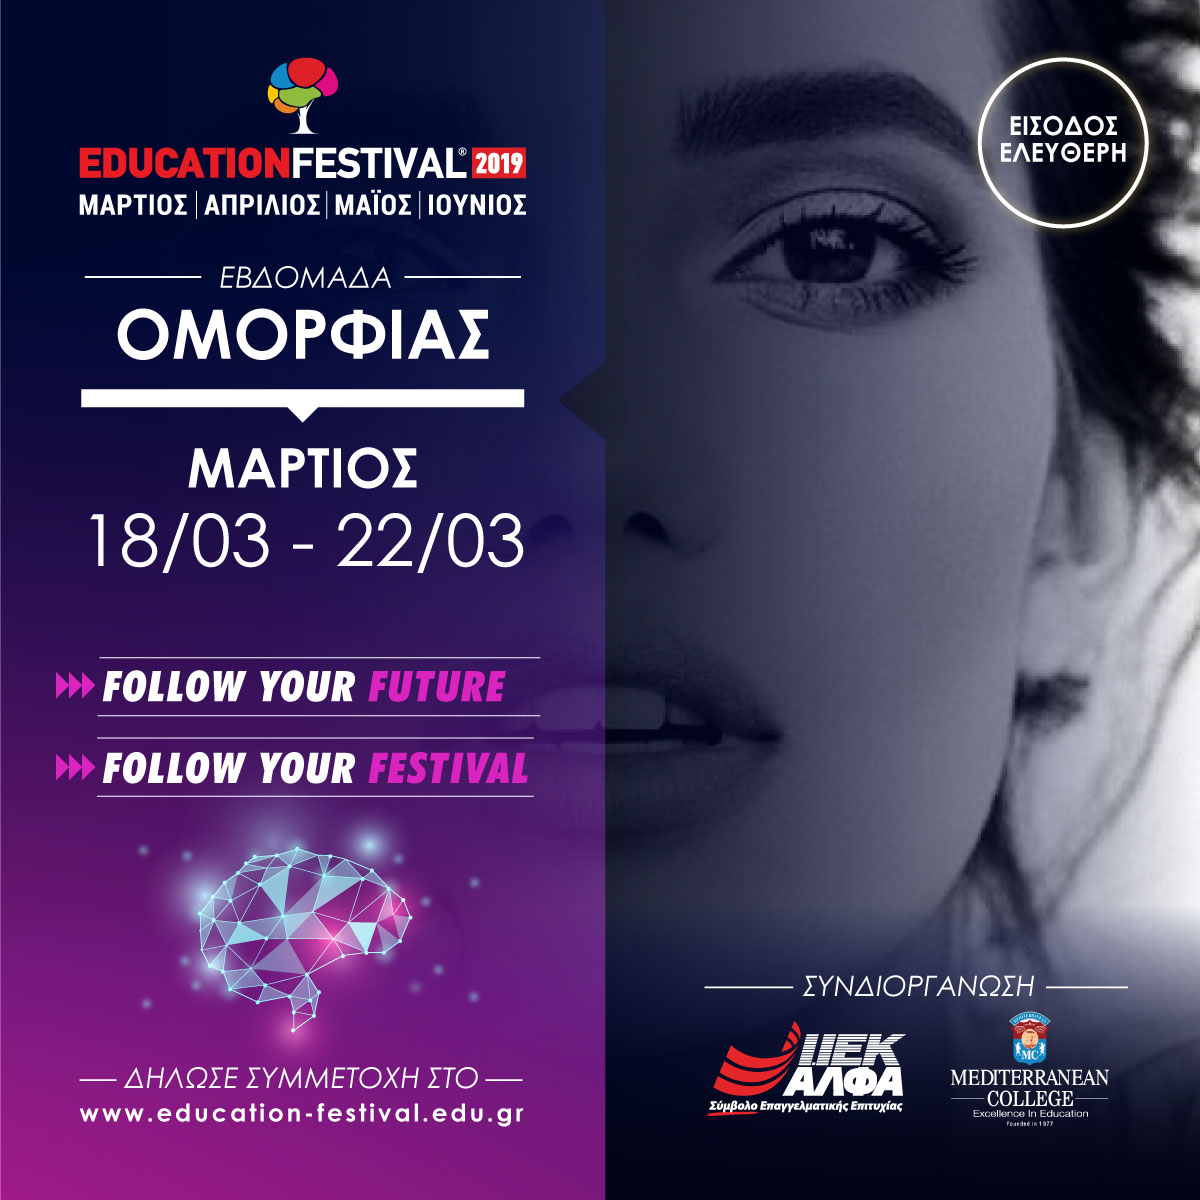 evdomada omorfias education festival